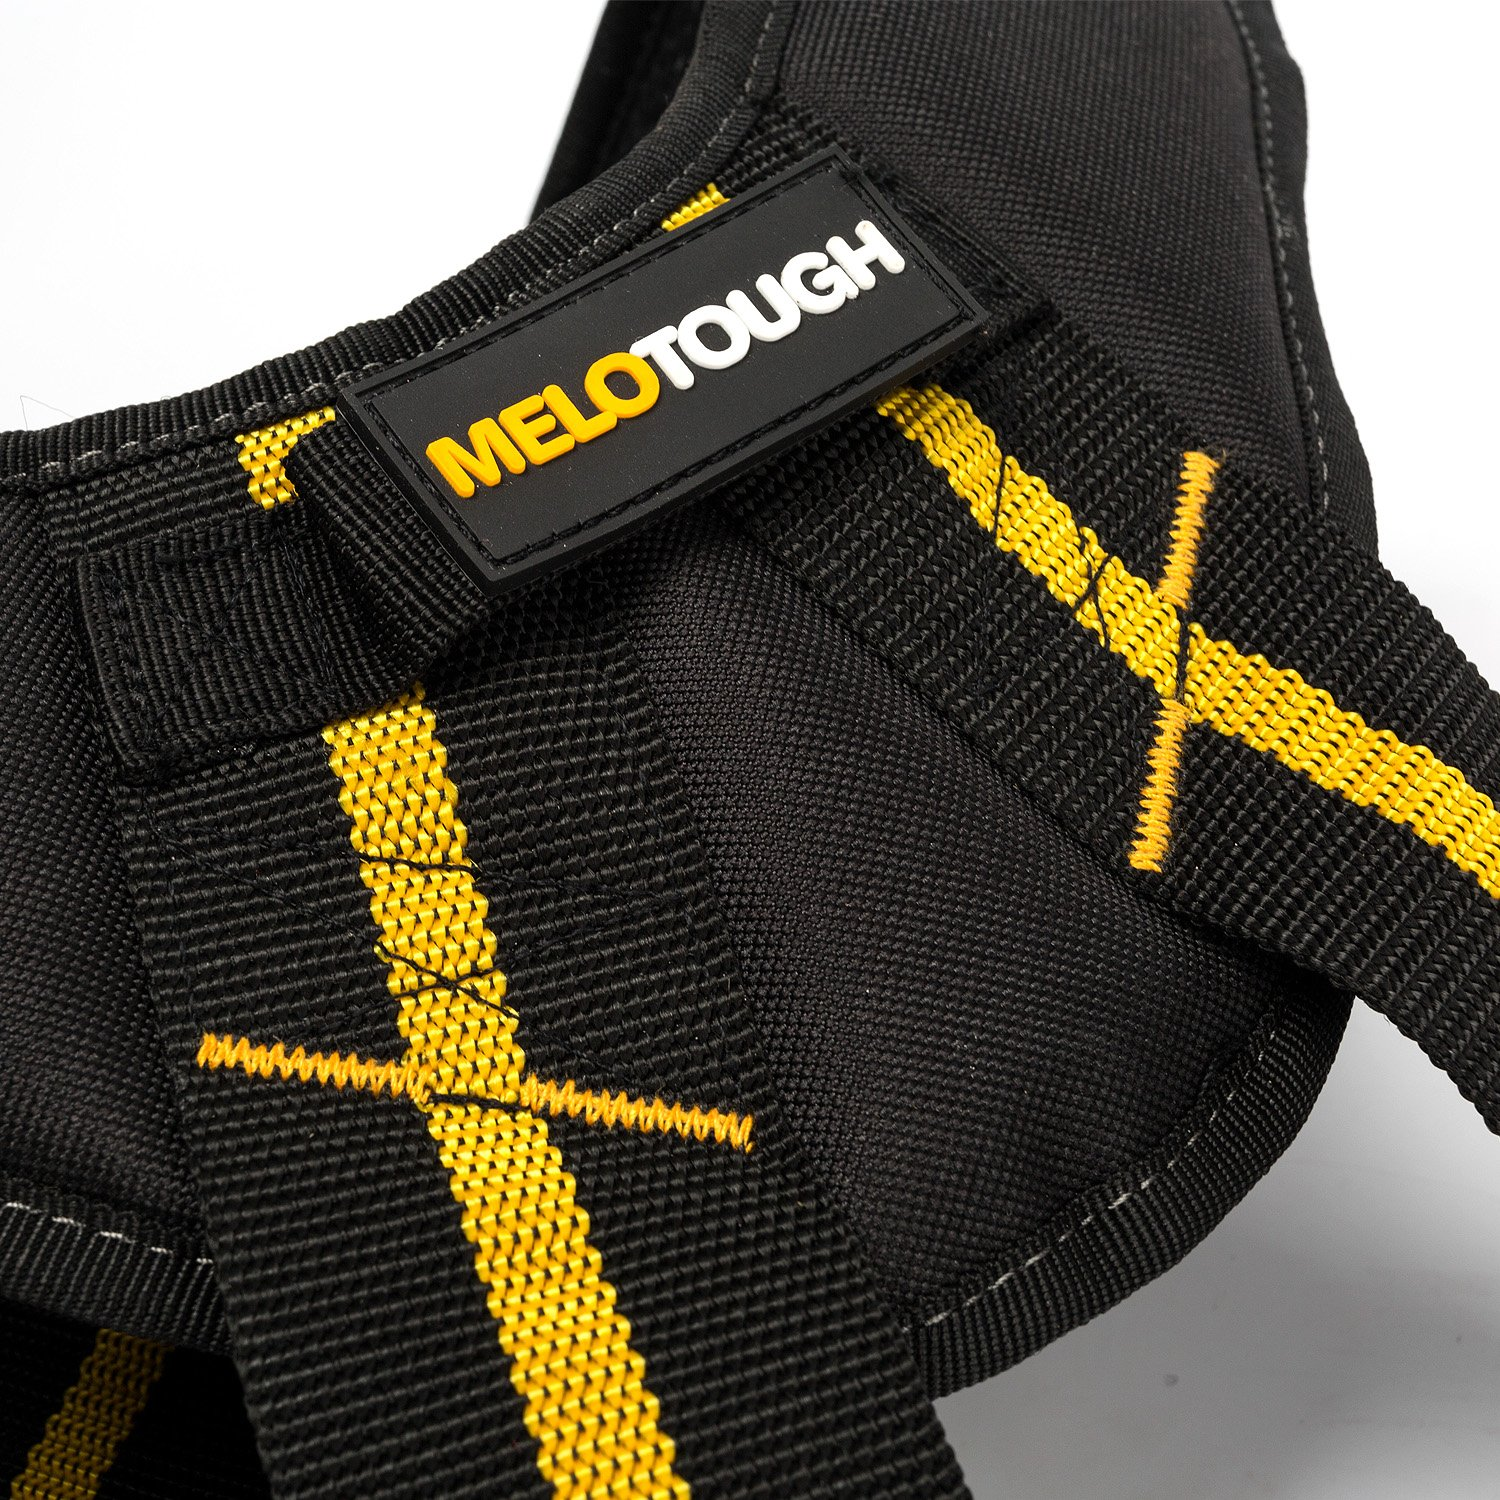 Tool Belt Suspenders|Padded Suspenders with movable phone holder Tape Holder Pencil holder,Flexible Adjustable Straps, suspenders Loop Attachments for carpenter electrician work Suspension Rig by Melo Tough (Image #9)